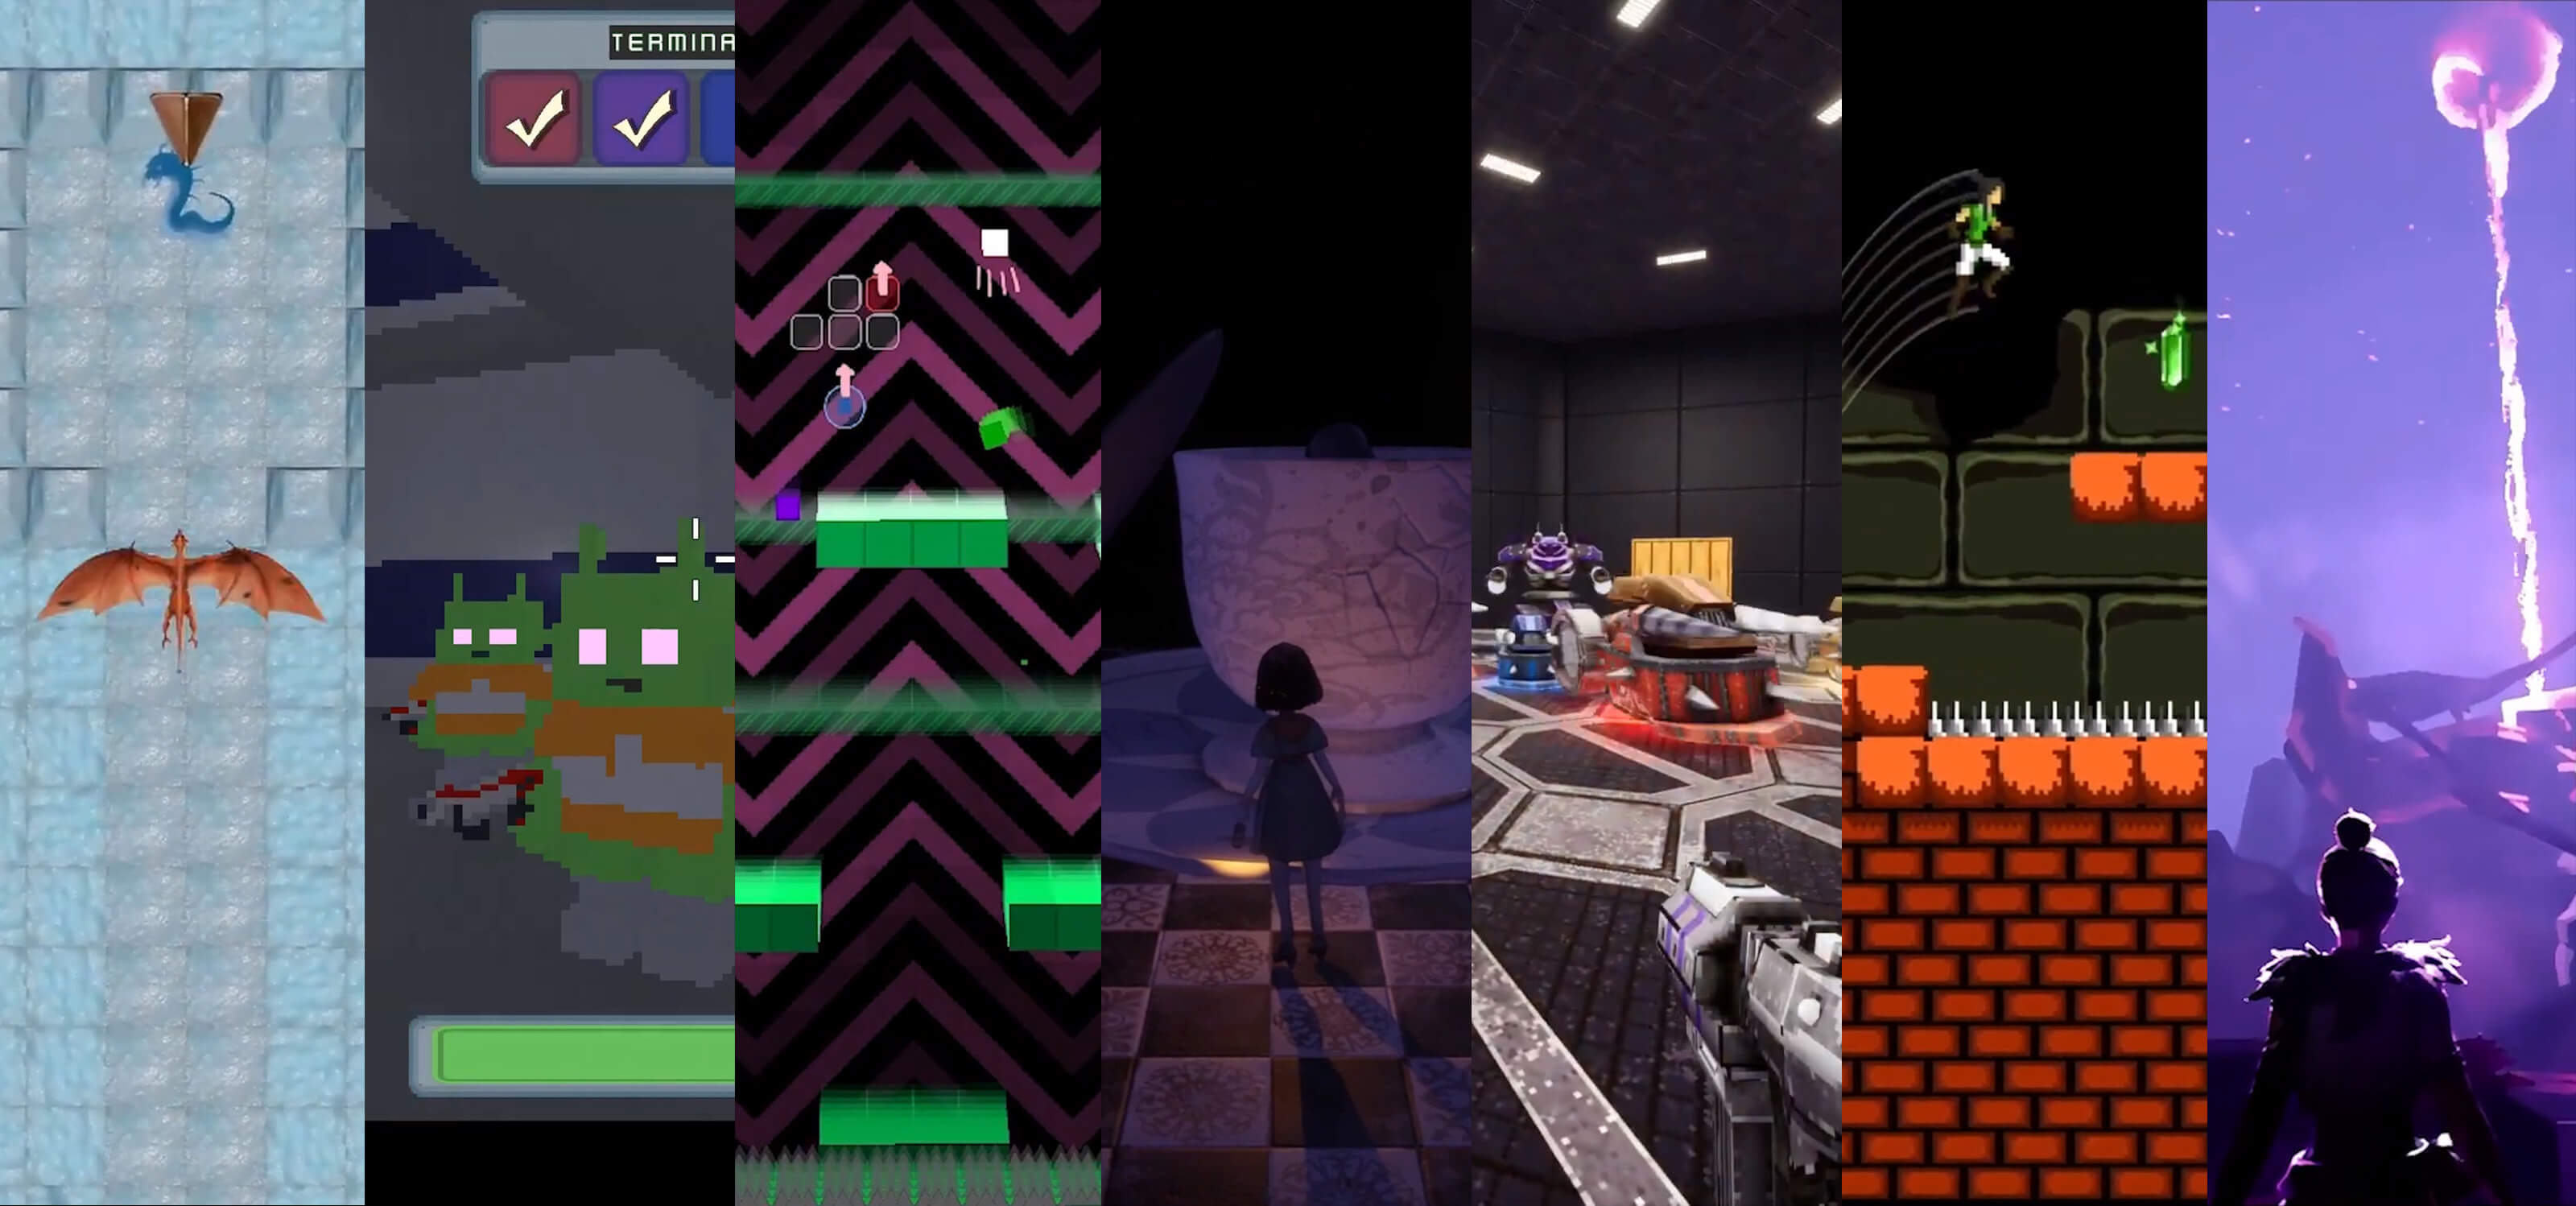 Collage of images from game screenshots, including a dragon, porcelein doll, blocks, and aliens.